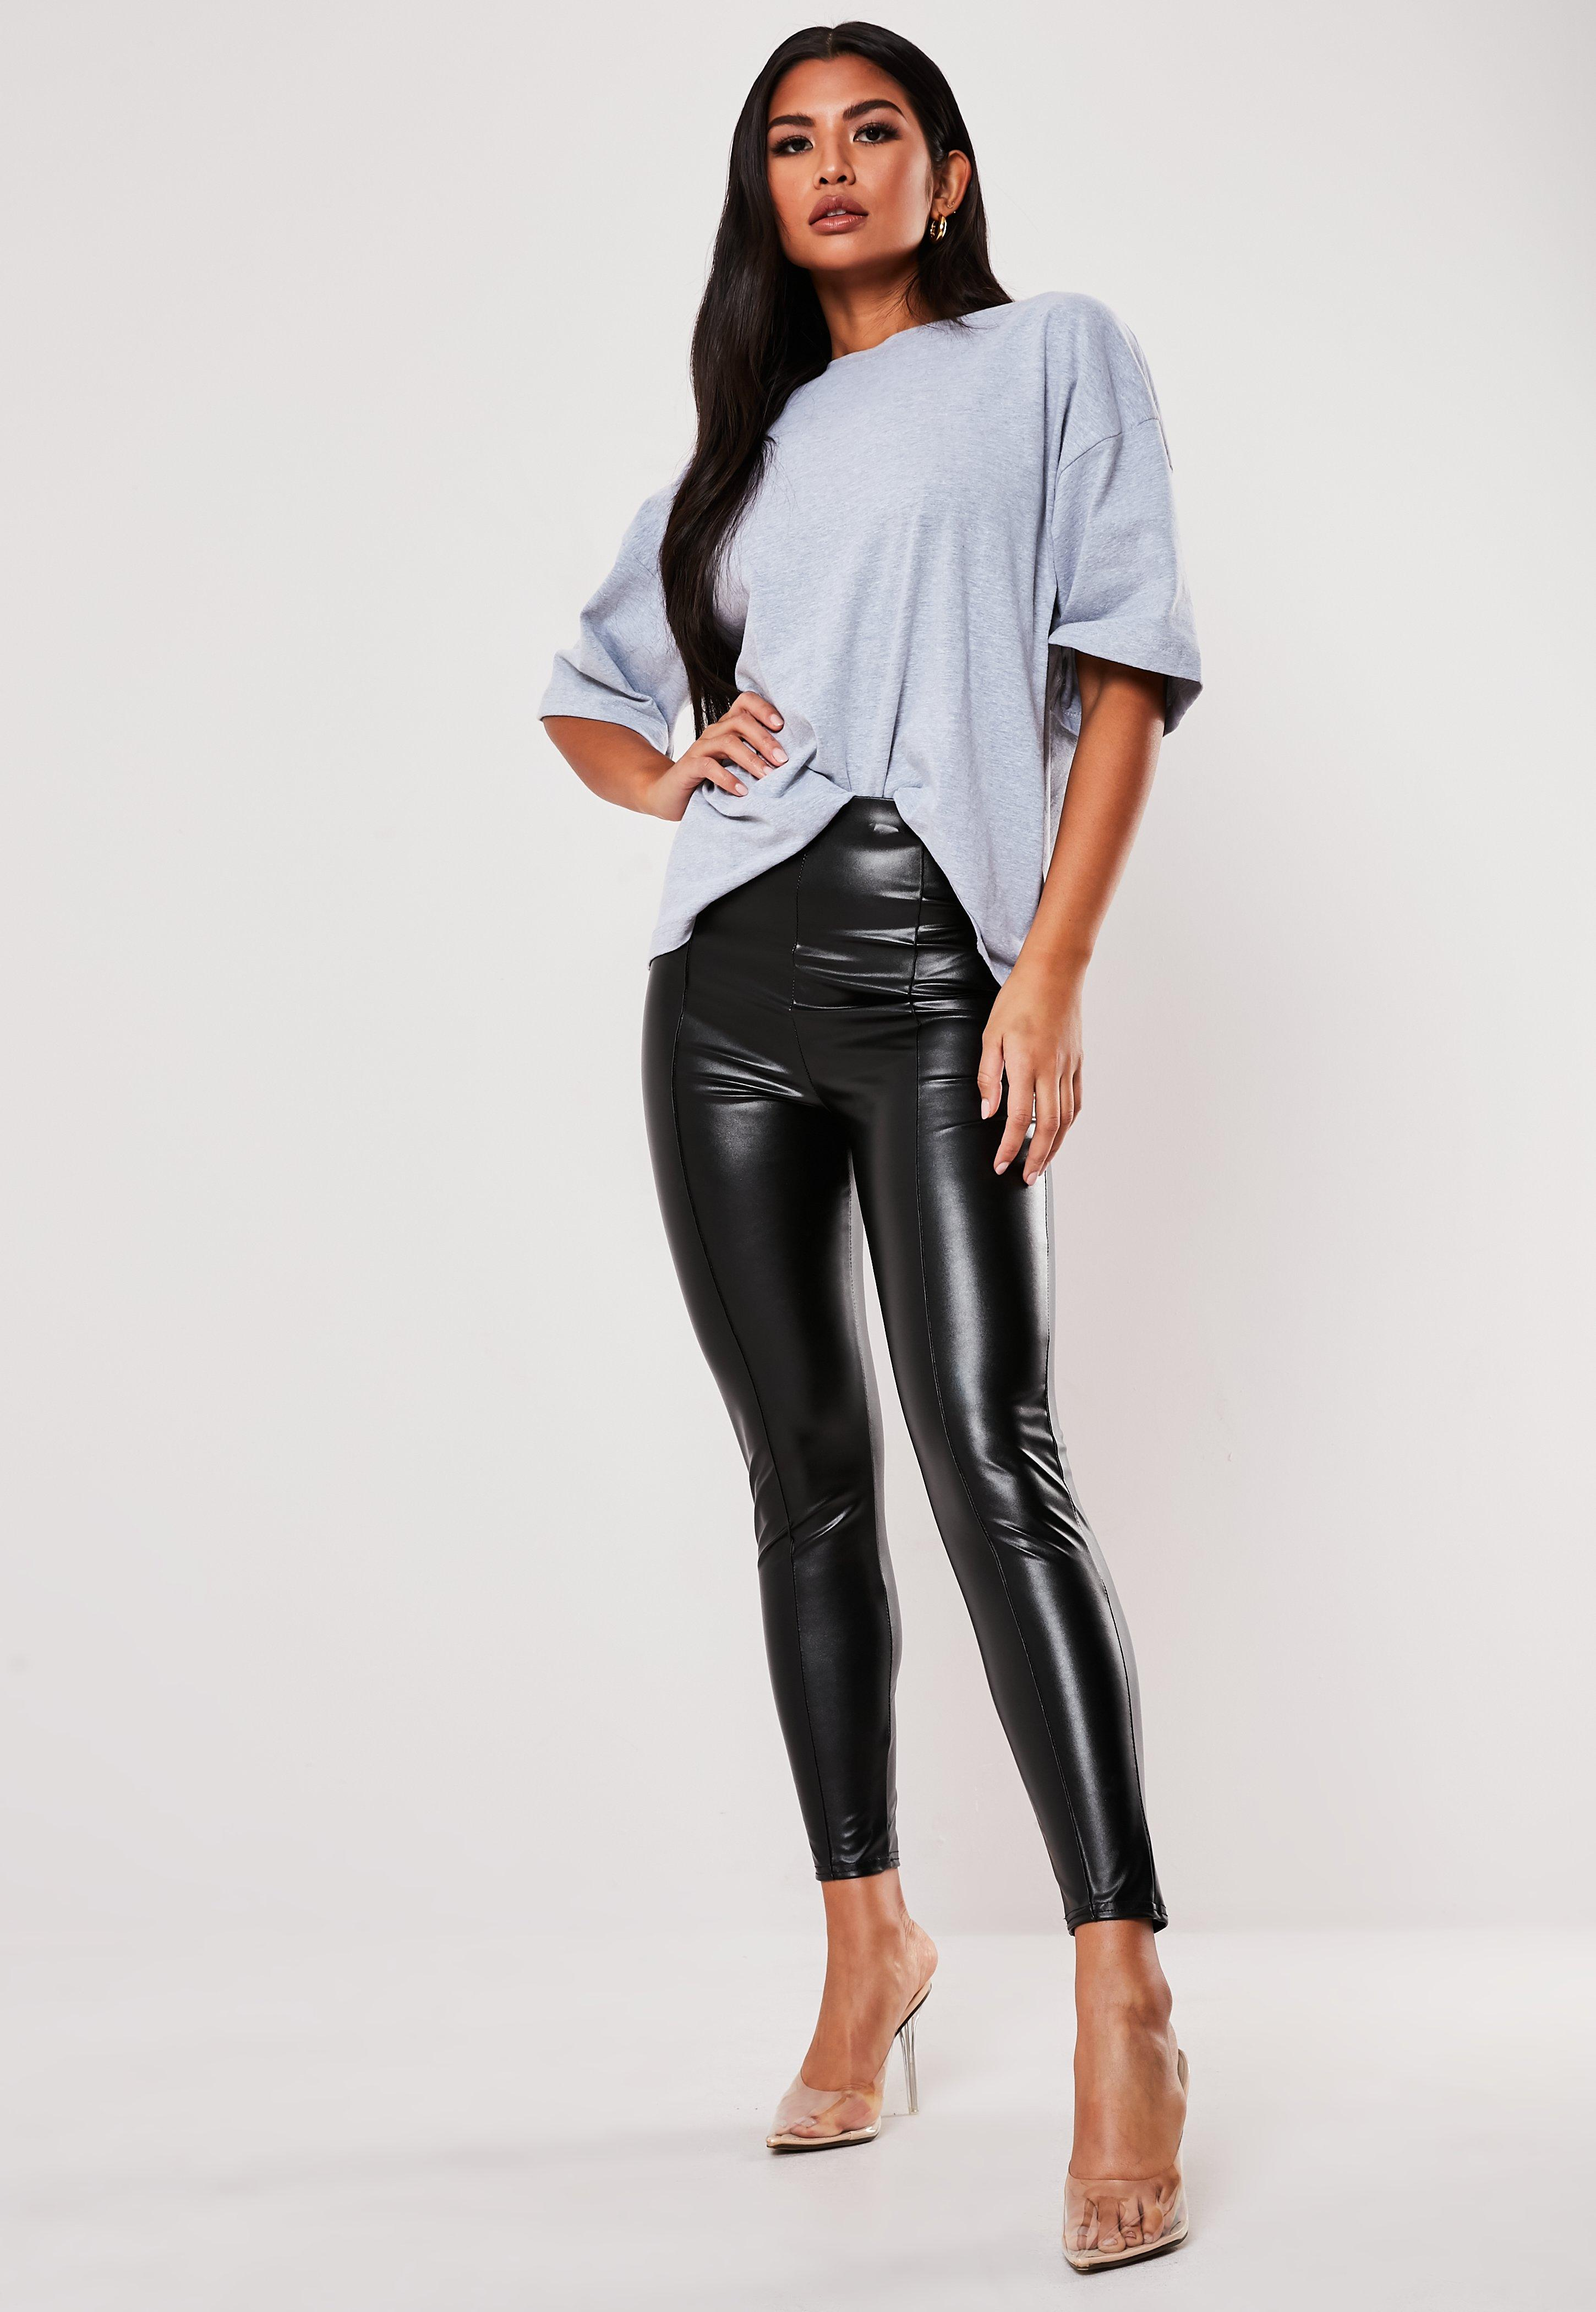 outlet store sale choose genuine low price Black Faux Leather Pin Tuck Leggings